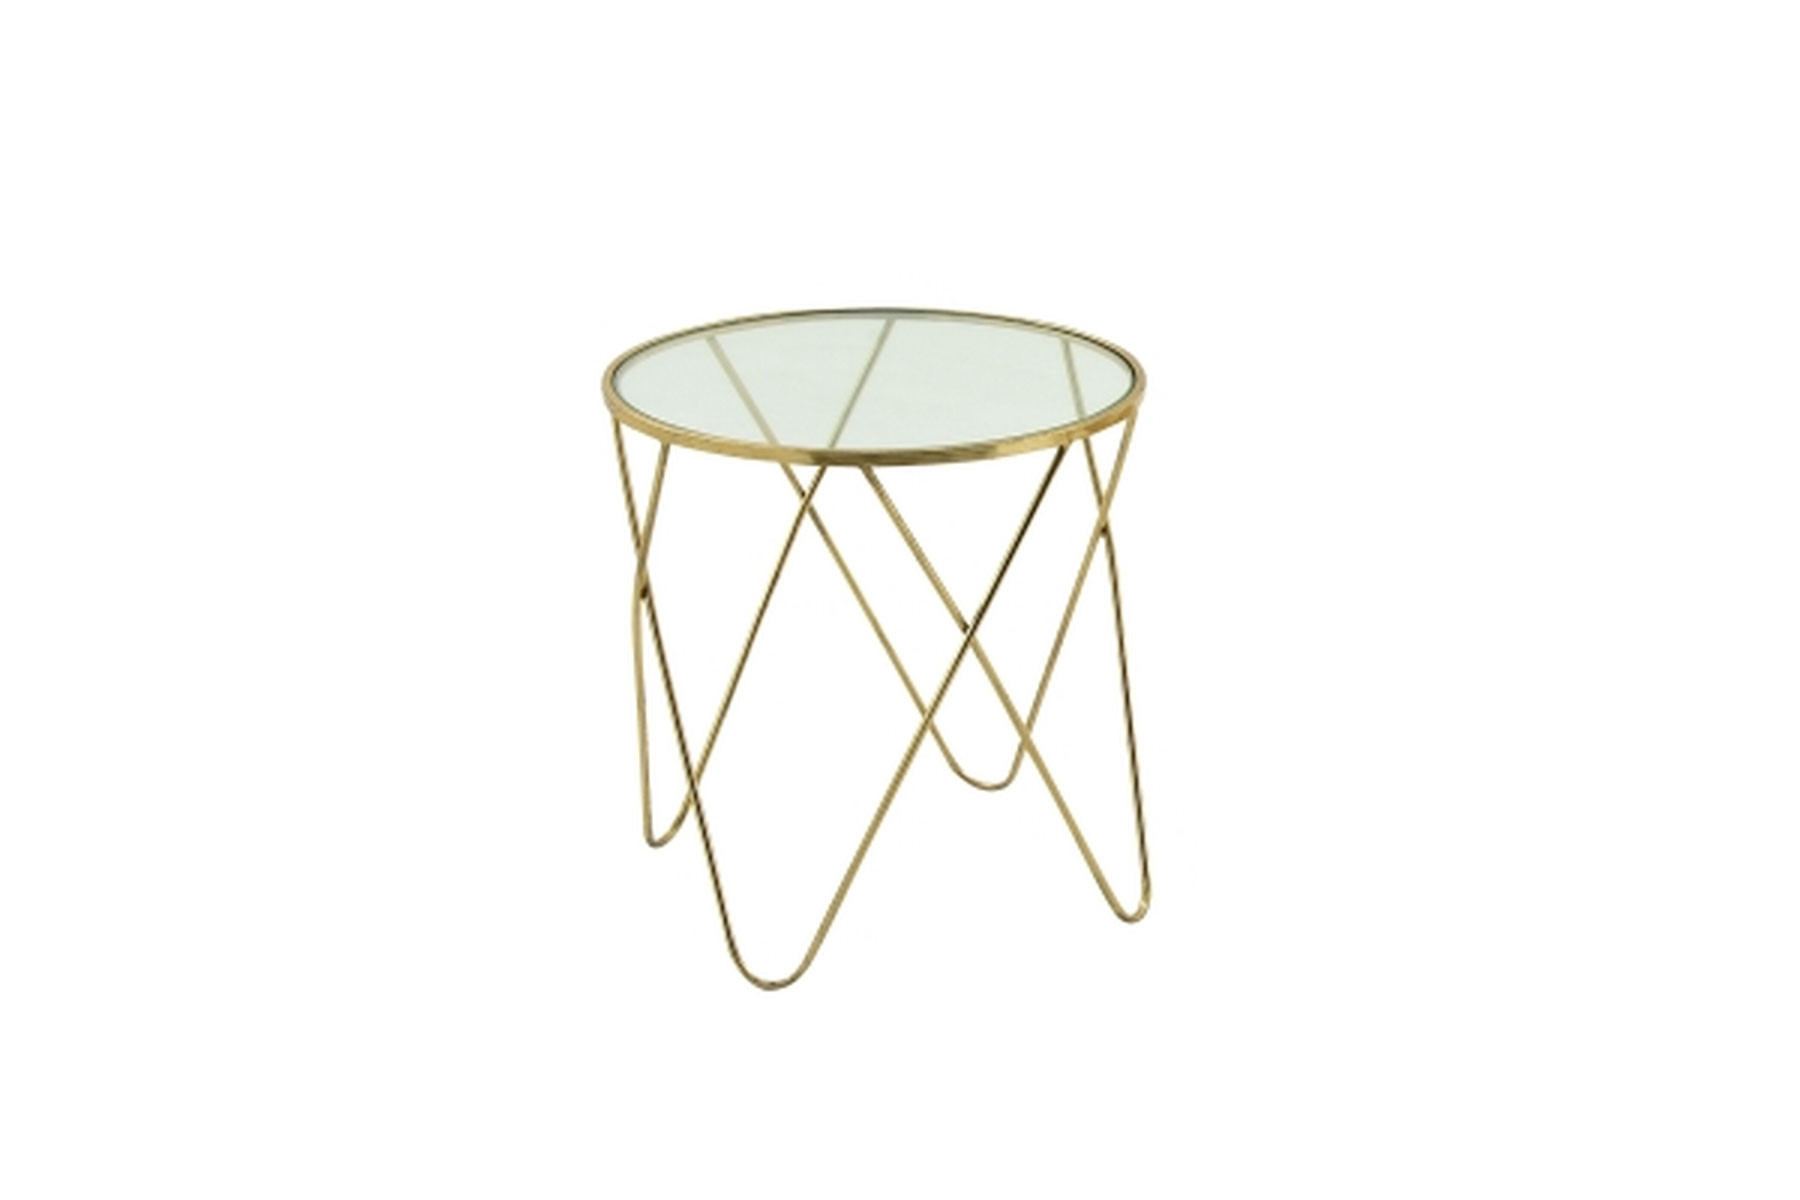 large metal glass accent table small sofa lamps target armchair bedroom side decor coffee and tables black marble chairs craftsman lamp tiffany style chandelier inch console whit